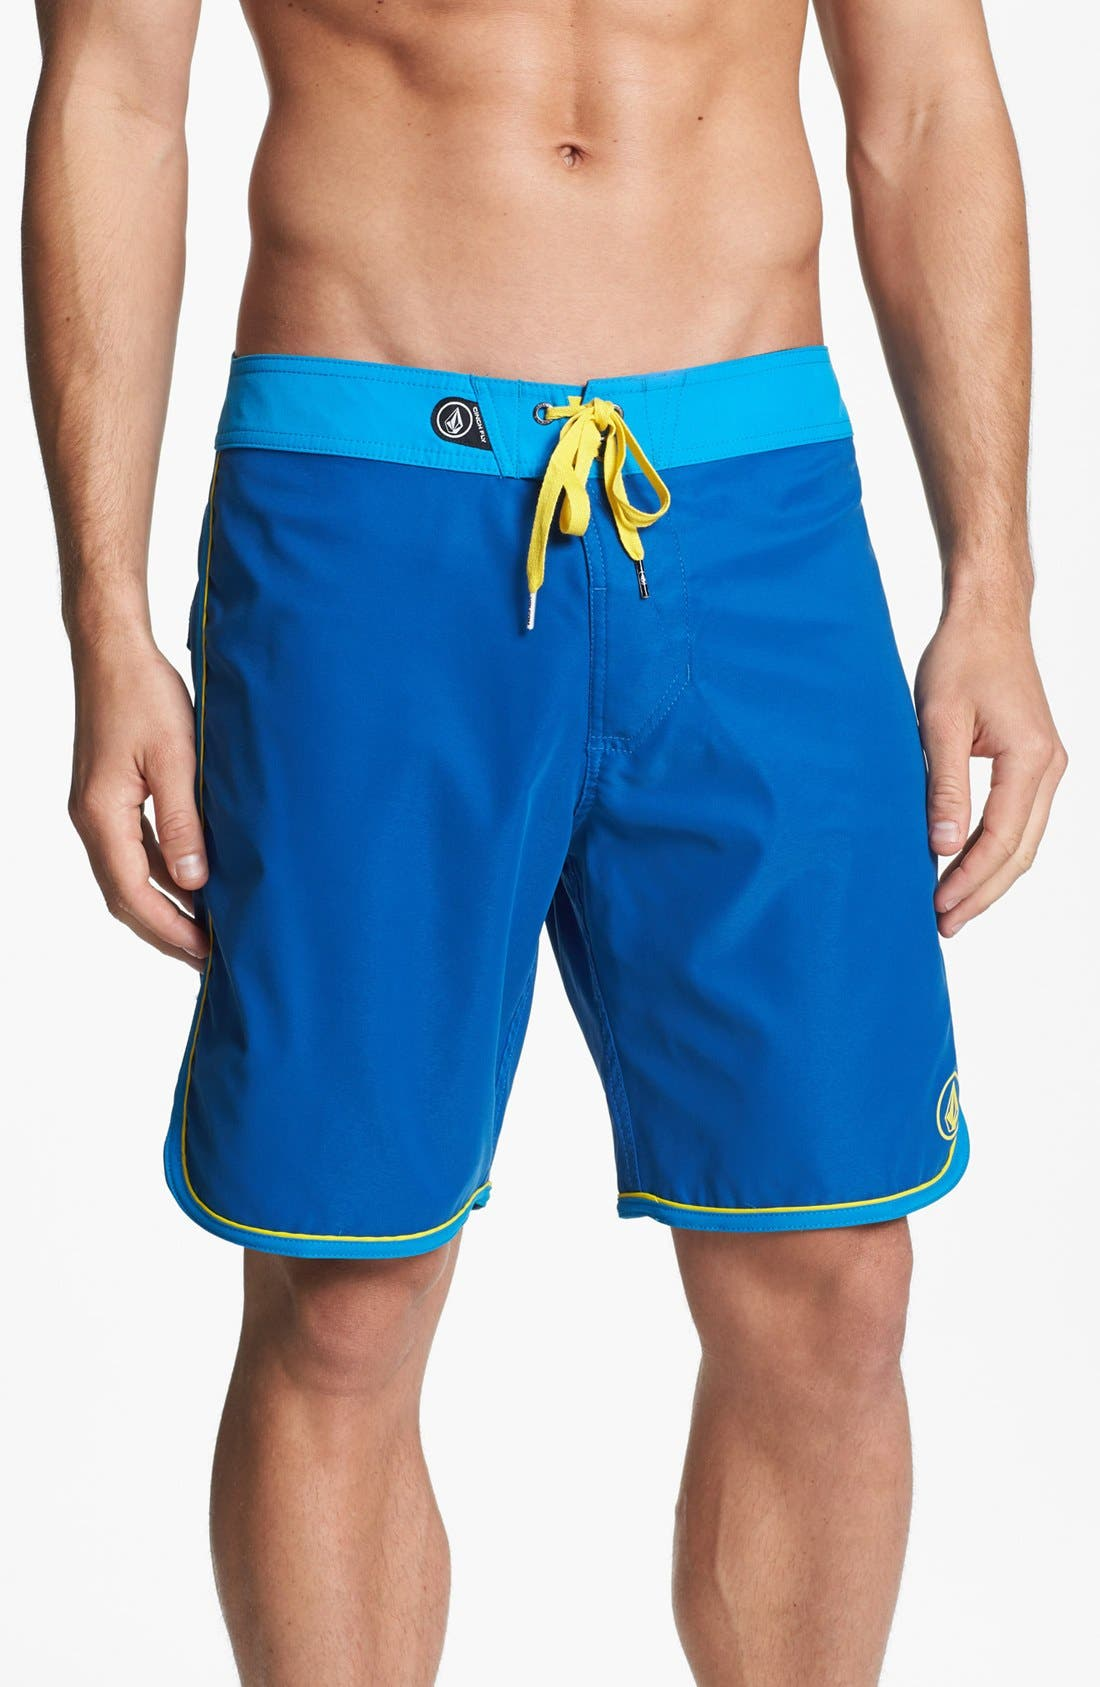 Alternate Image 1 Selected - Volcom 'New Jetty' Board Shorts